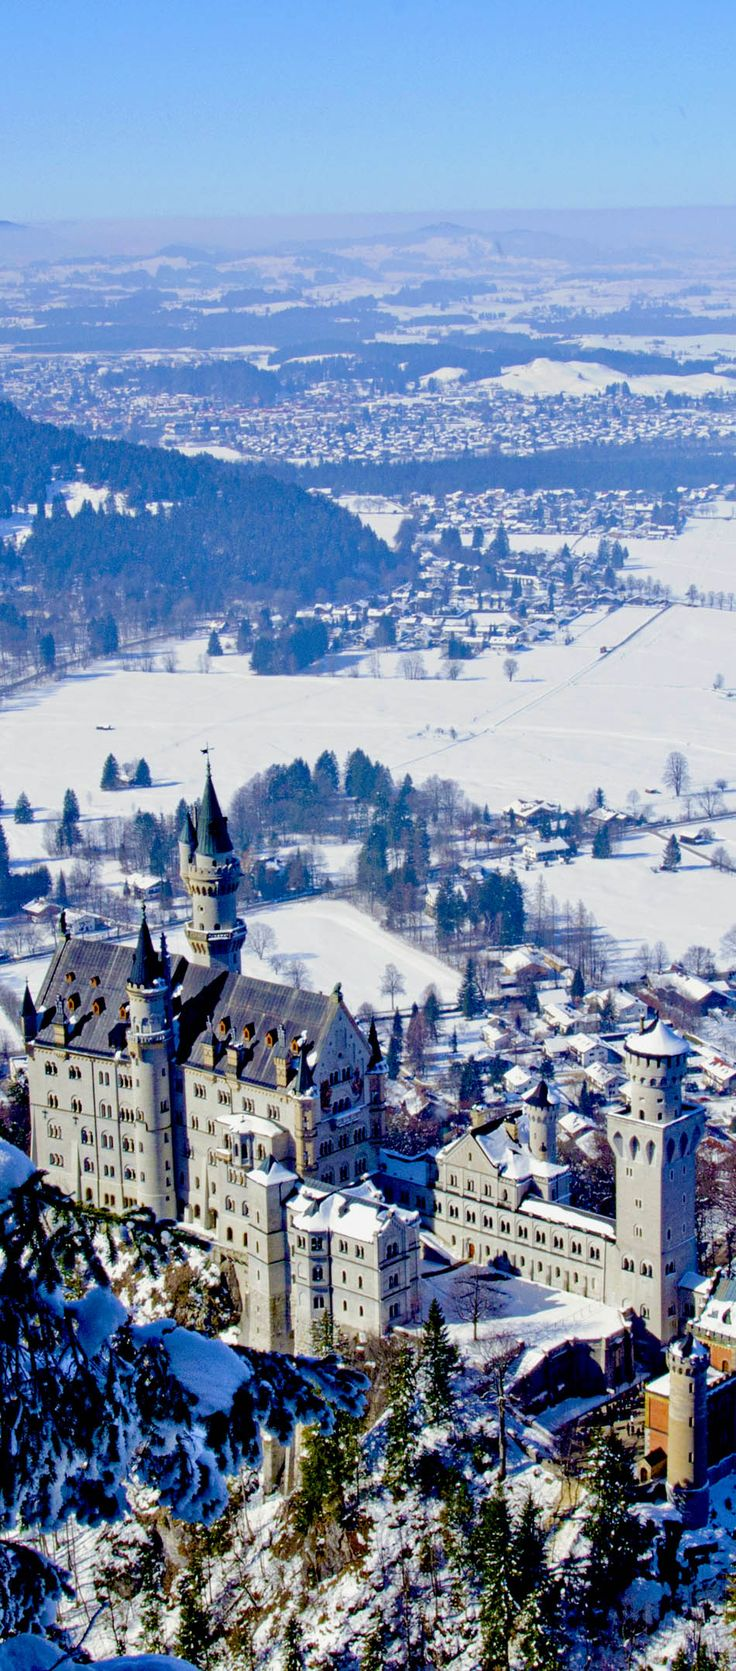 Neuschwanstein castle in Bavarian Alps, Germany    |   The 20 Most Stunning Fairytale Castles in Winter